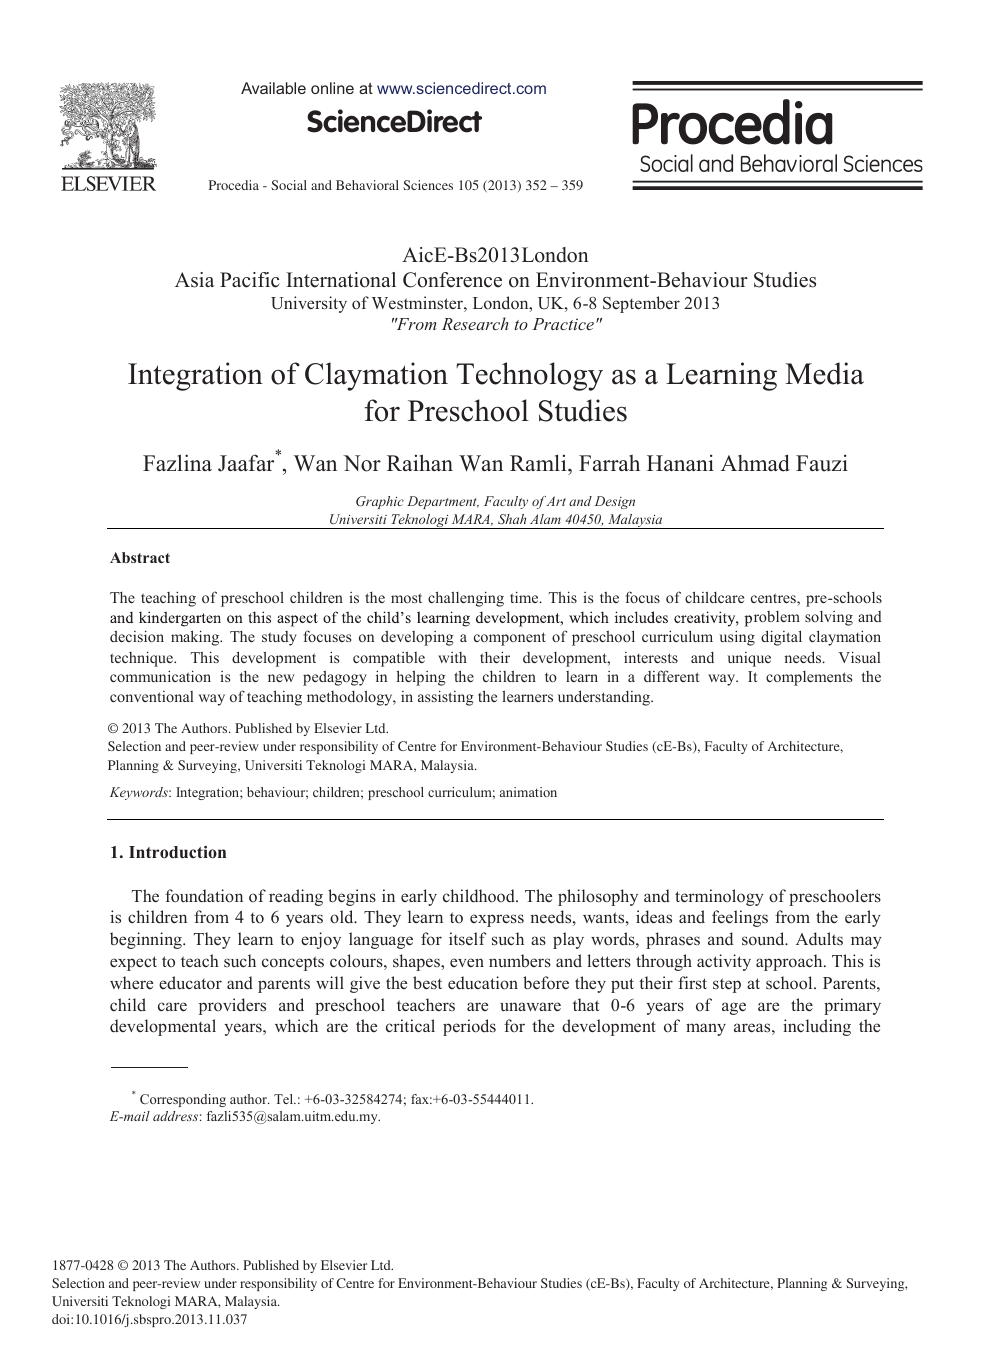 Integration of Claymation Technology as a Learning Media for